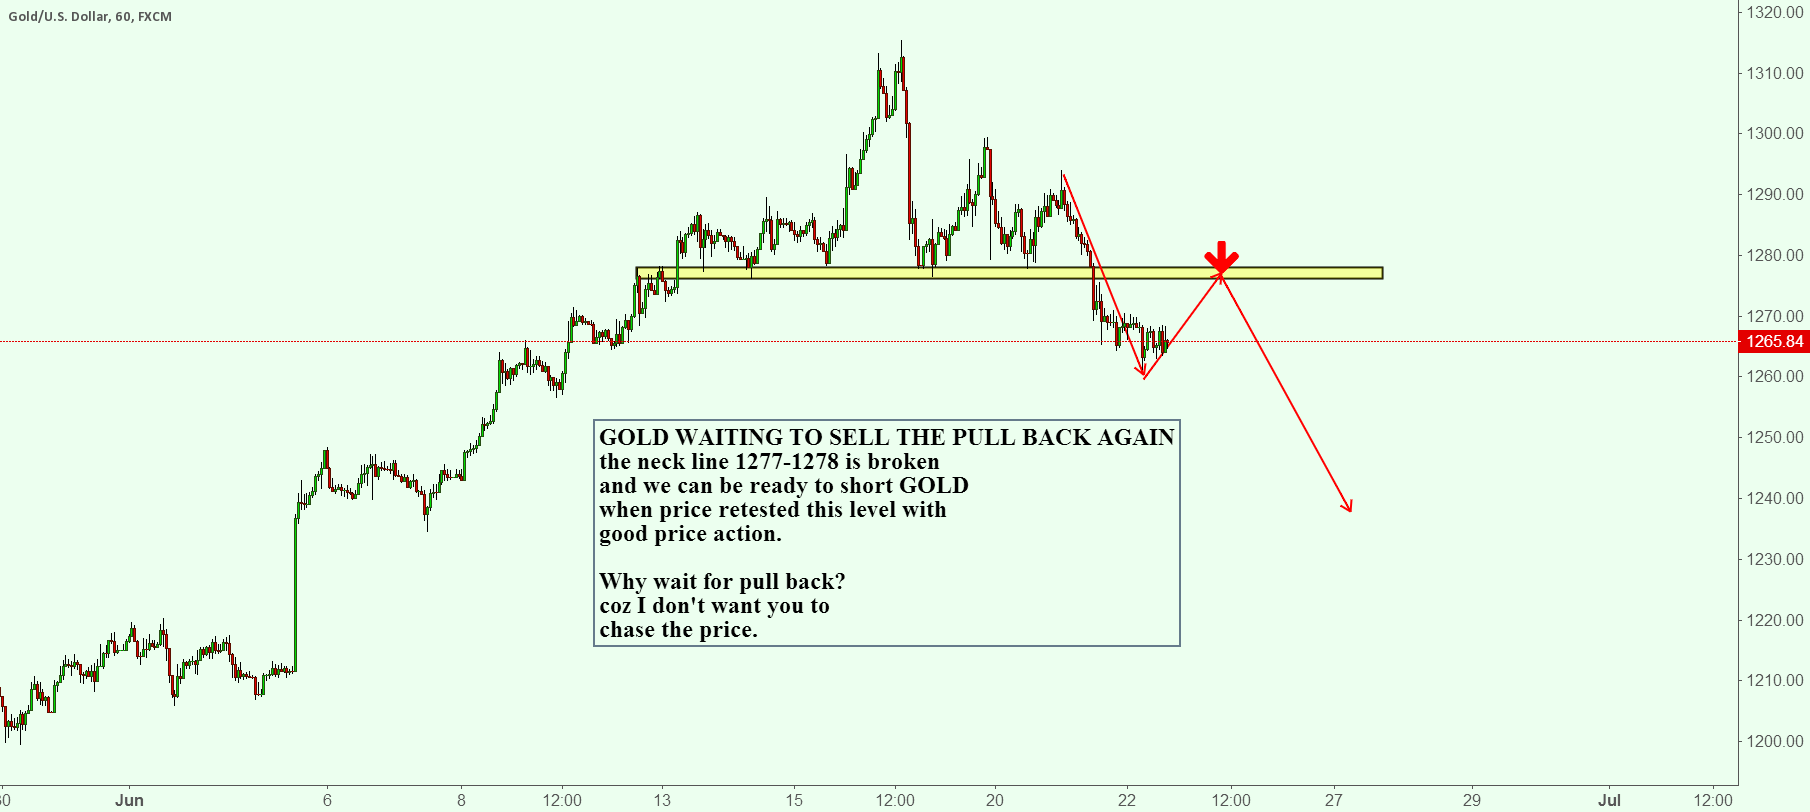 GOLD WAITING TO SELL THE PULL BACK AGAIN